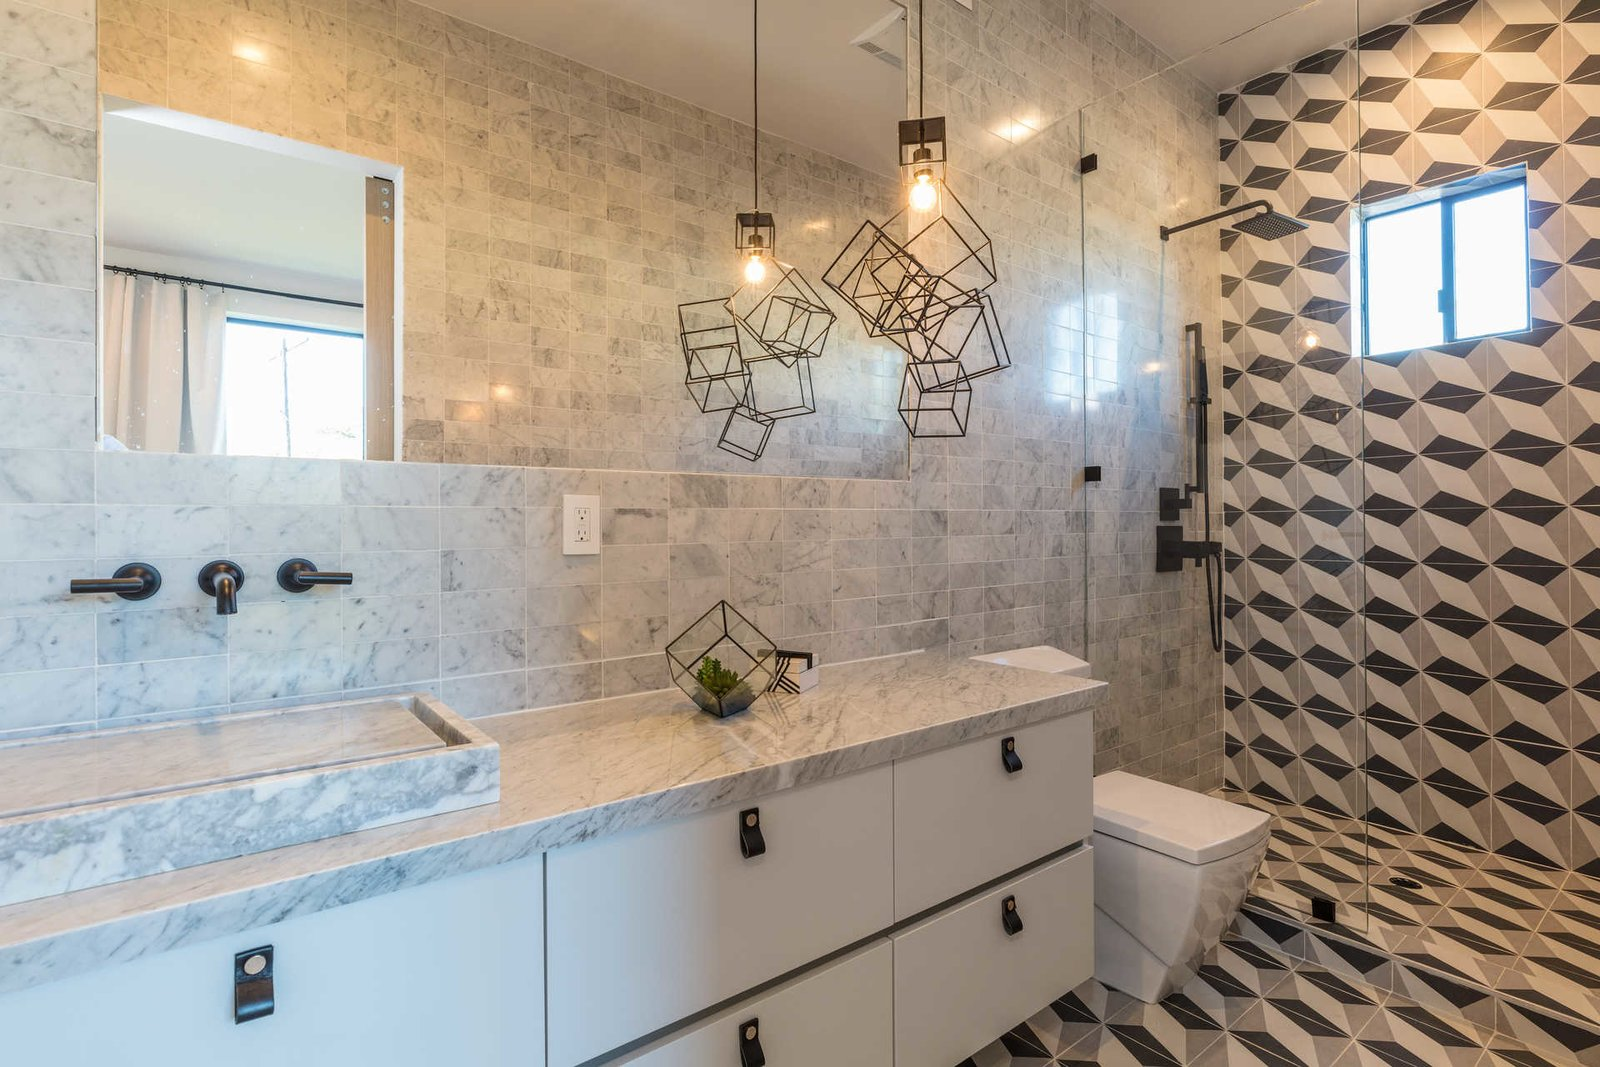 Tagged: Bath Room, One Piece Toilet, Ceiling Lighting, Pendant Lighting, Corner Shower, and Enclosed Shower.  Italian Modernist Home by Zillow